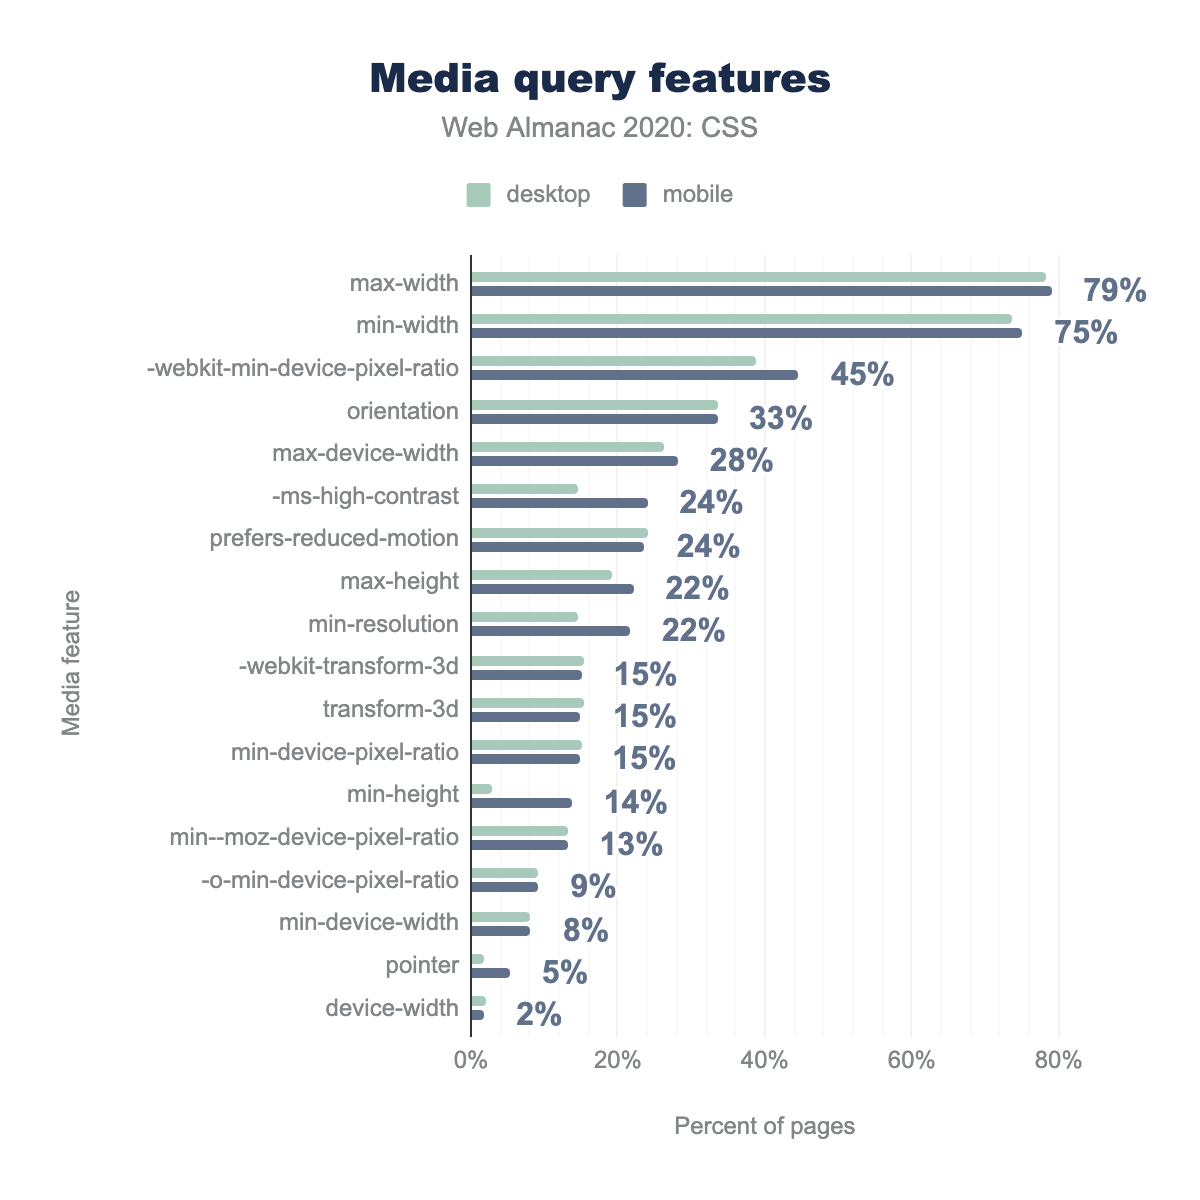 The most popular media query features as a percent of pages.